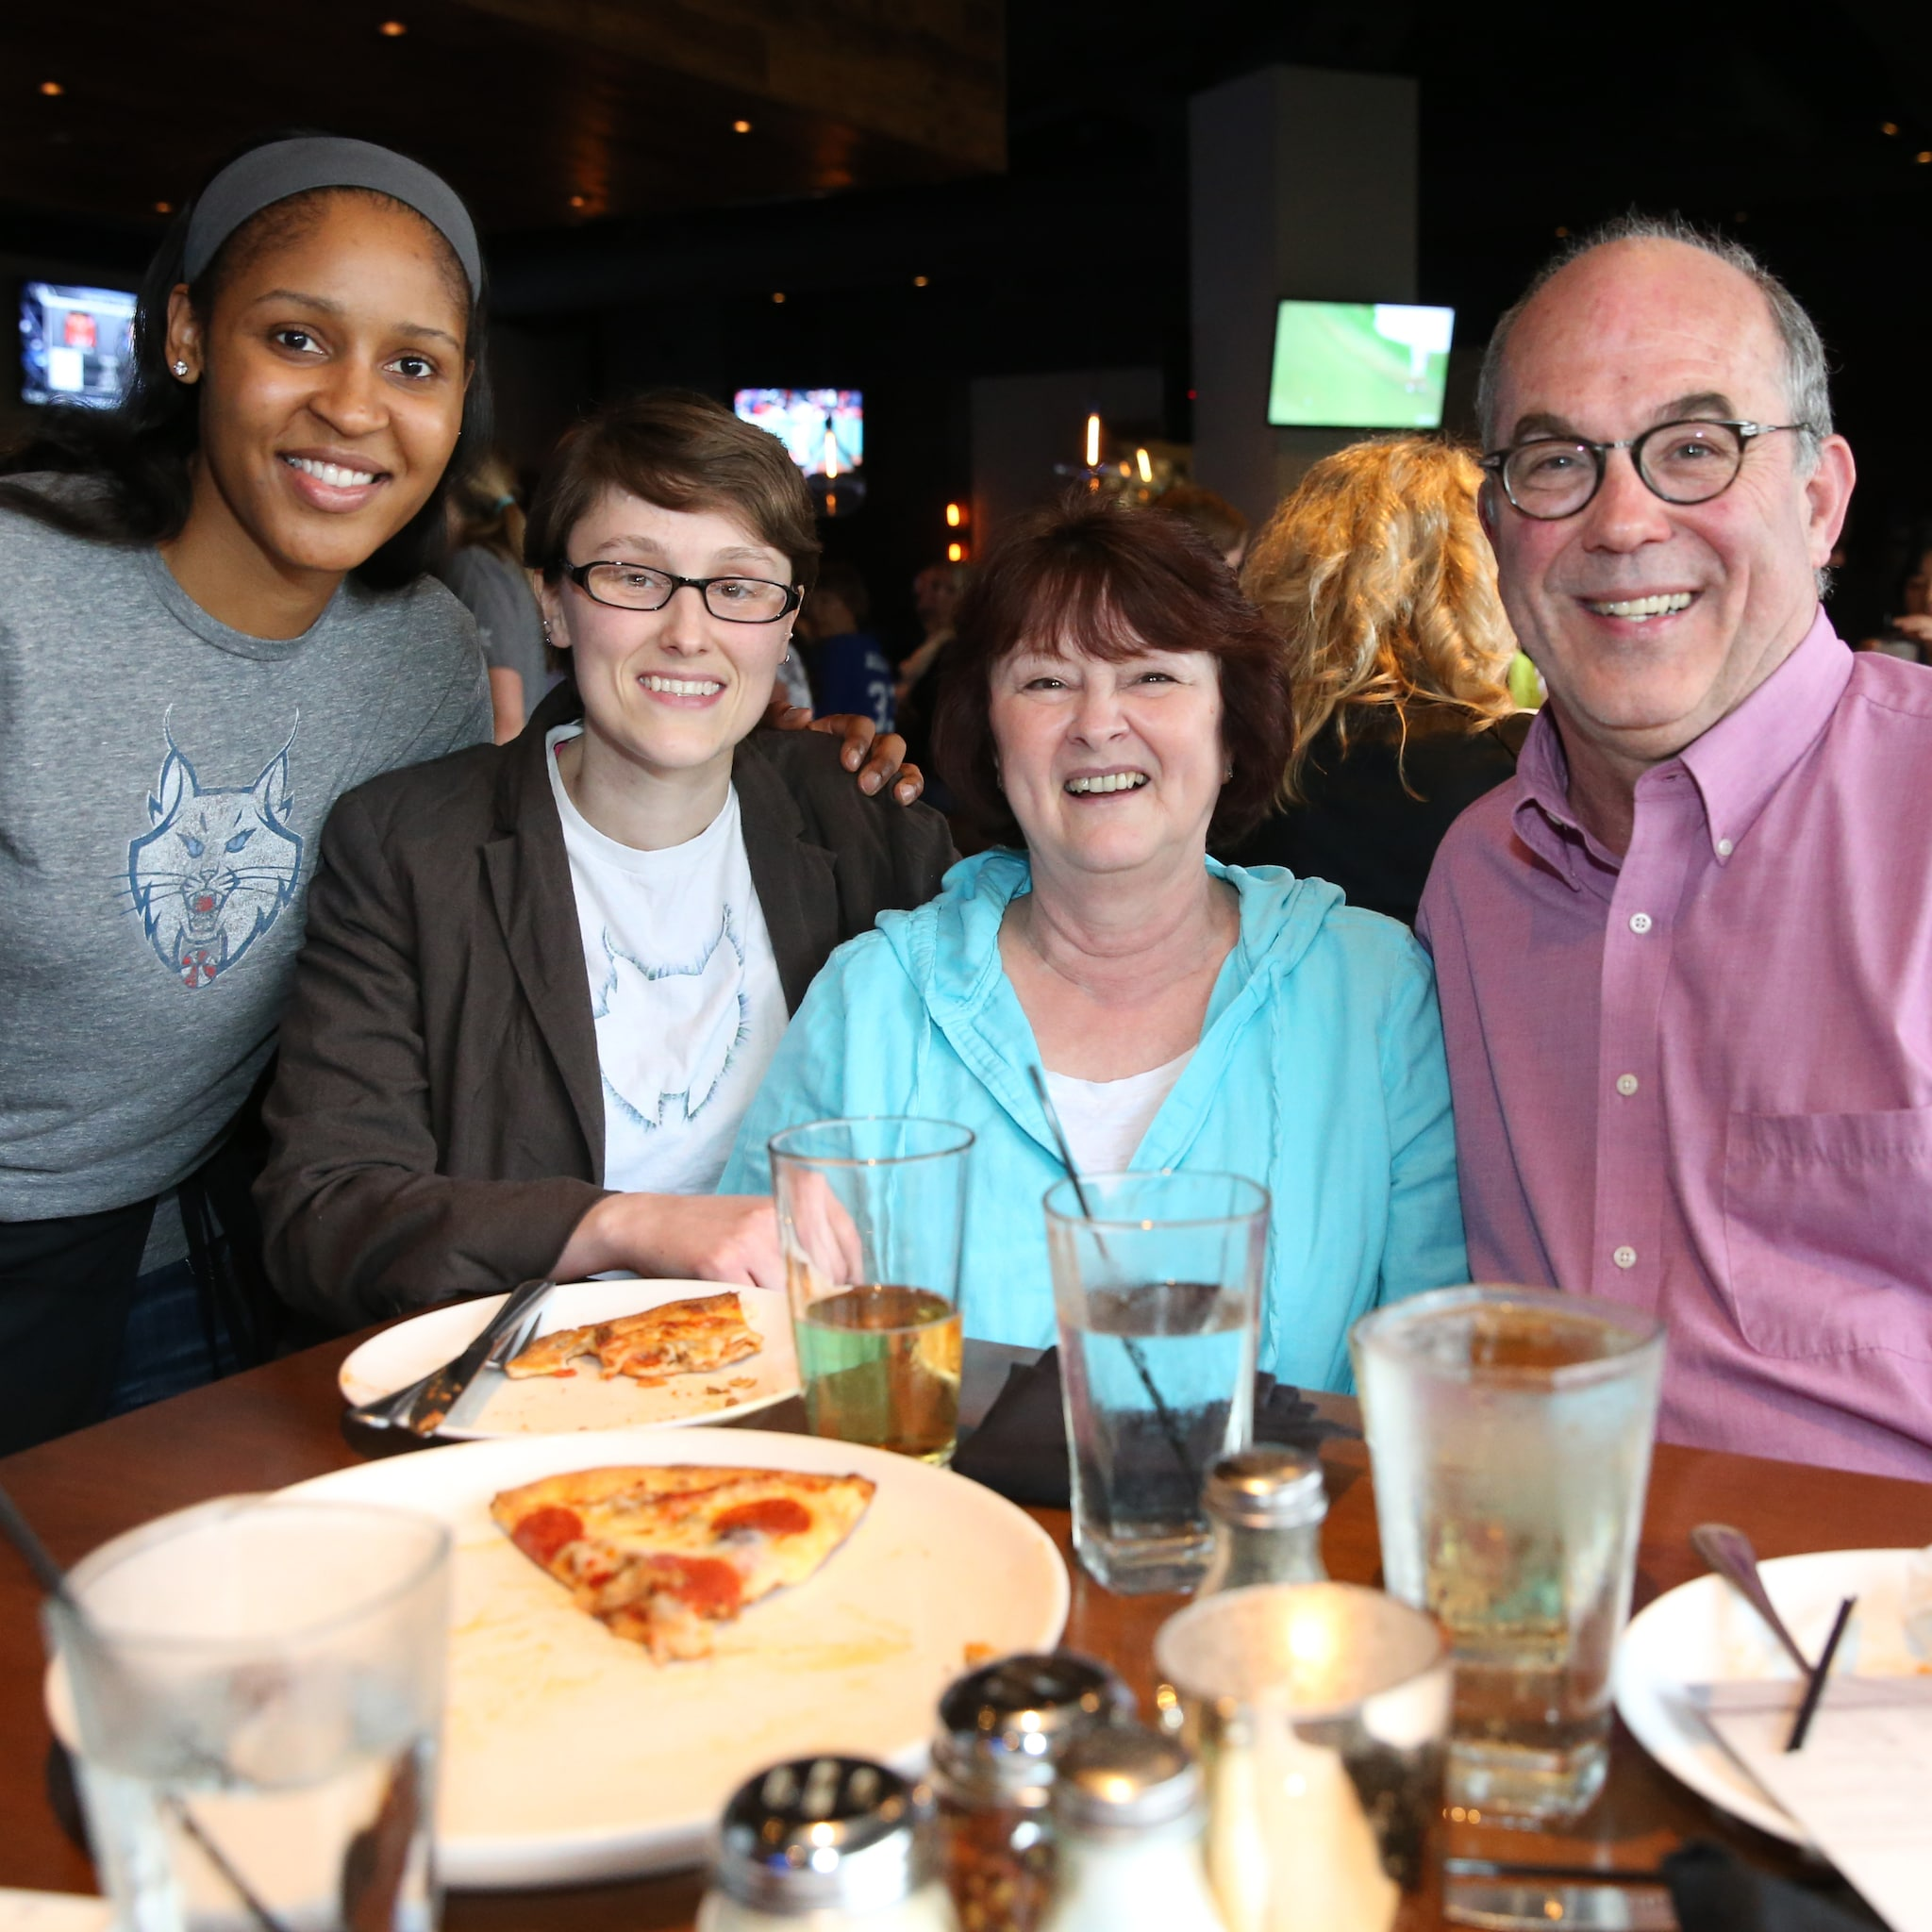 MINNEAPOLIS, MN - JUNE 3:  Maya Moore #23 of the Minnesota Lynx poses with fans during the Tip-A-Lynx fundraiser to benefit the Minnesota Lynx Fastbreak Foundation on June 3, 2015 at the Loop West End Bar & Restaurant in Minneapolis, Minnesota.  NOTE TO USER: User expressly acknowledges and agrees that, by downloading and or using this Photograph, user is consenting to the terms and conditions of the Getty Images License Agreement. Mandatory Copyright Notice: Copyright 2015 NBAE (Photo by David Sherman/NBAE via Getty Images)